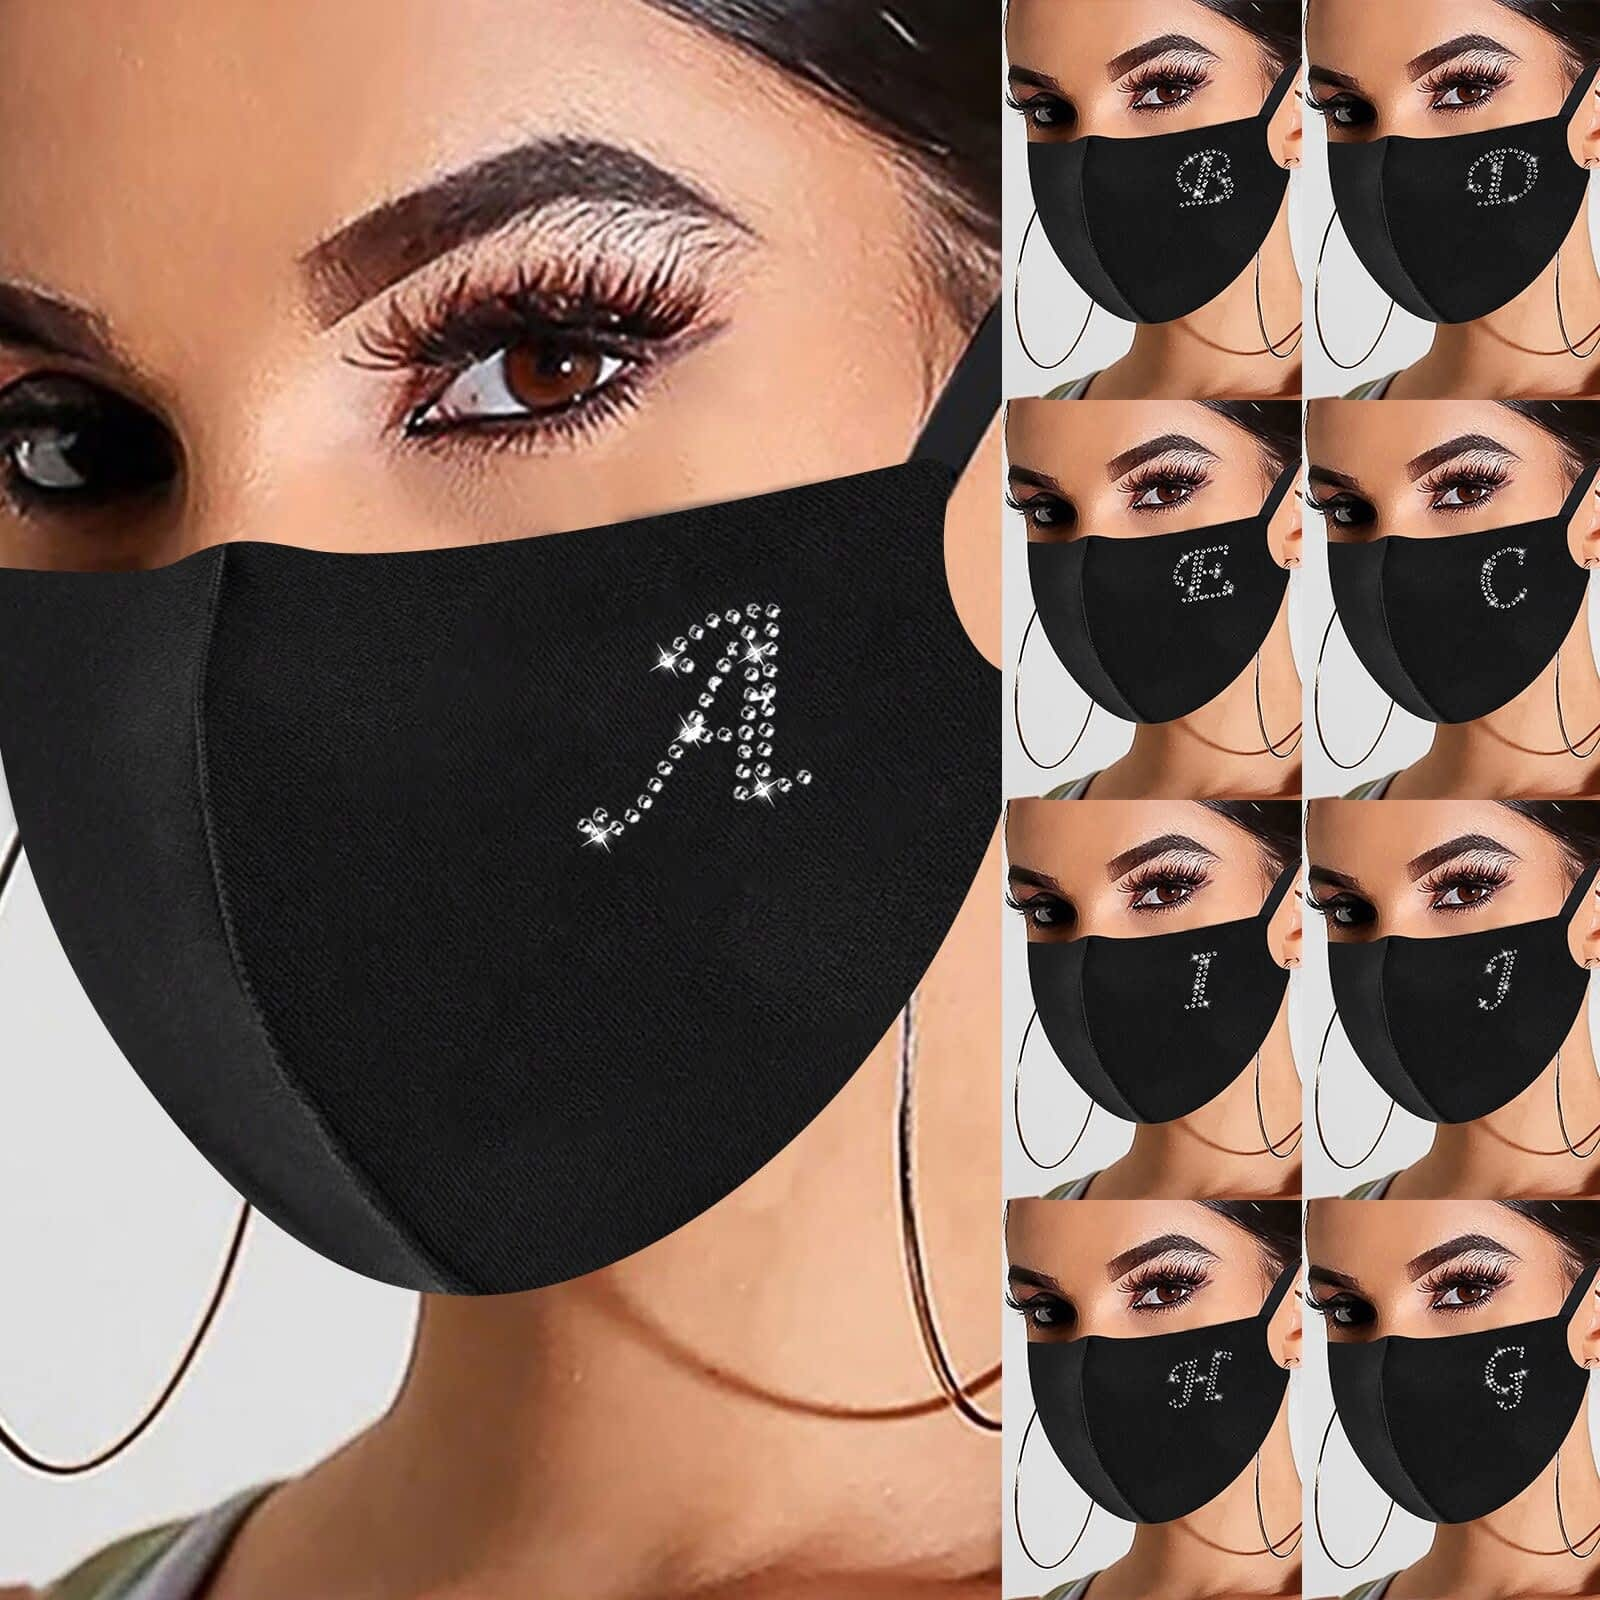 Rhinestone-Letter-Adult-Mask-Breathable-Mouth-Mask-Cloth-Mouth-Caps-Washable-Face-Mask-Reusable-Protective-Mask.jpg